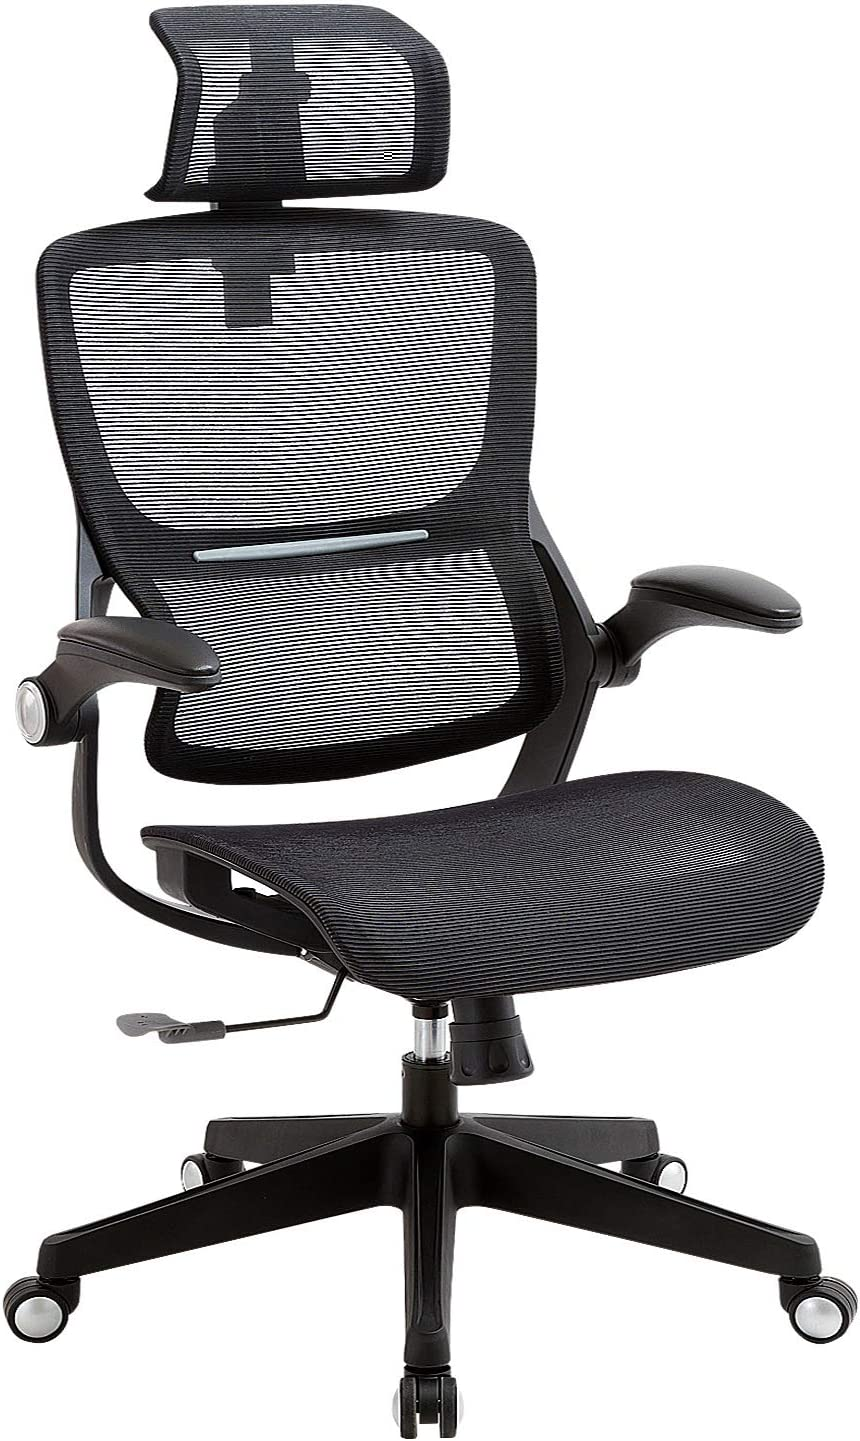 SAMOFU Office Chair Ergonomic Desk Chair Mesh Computer Chair with Adjustable Headrest Flip up Arms,Technical Task Swivel Executive High Back Home Office Chair(Black)